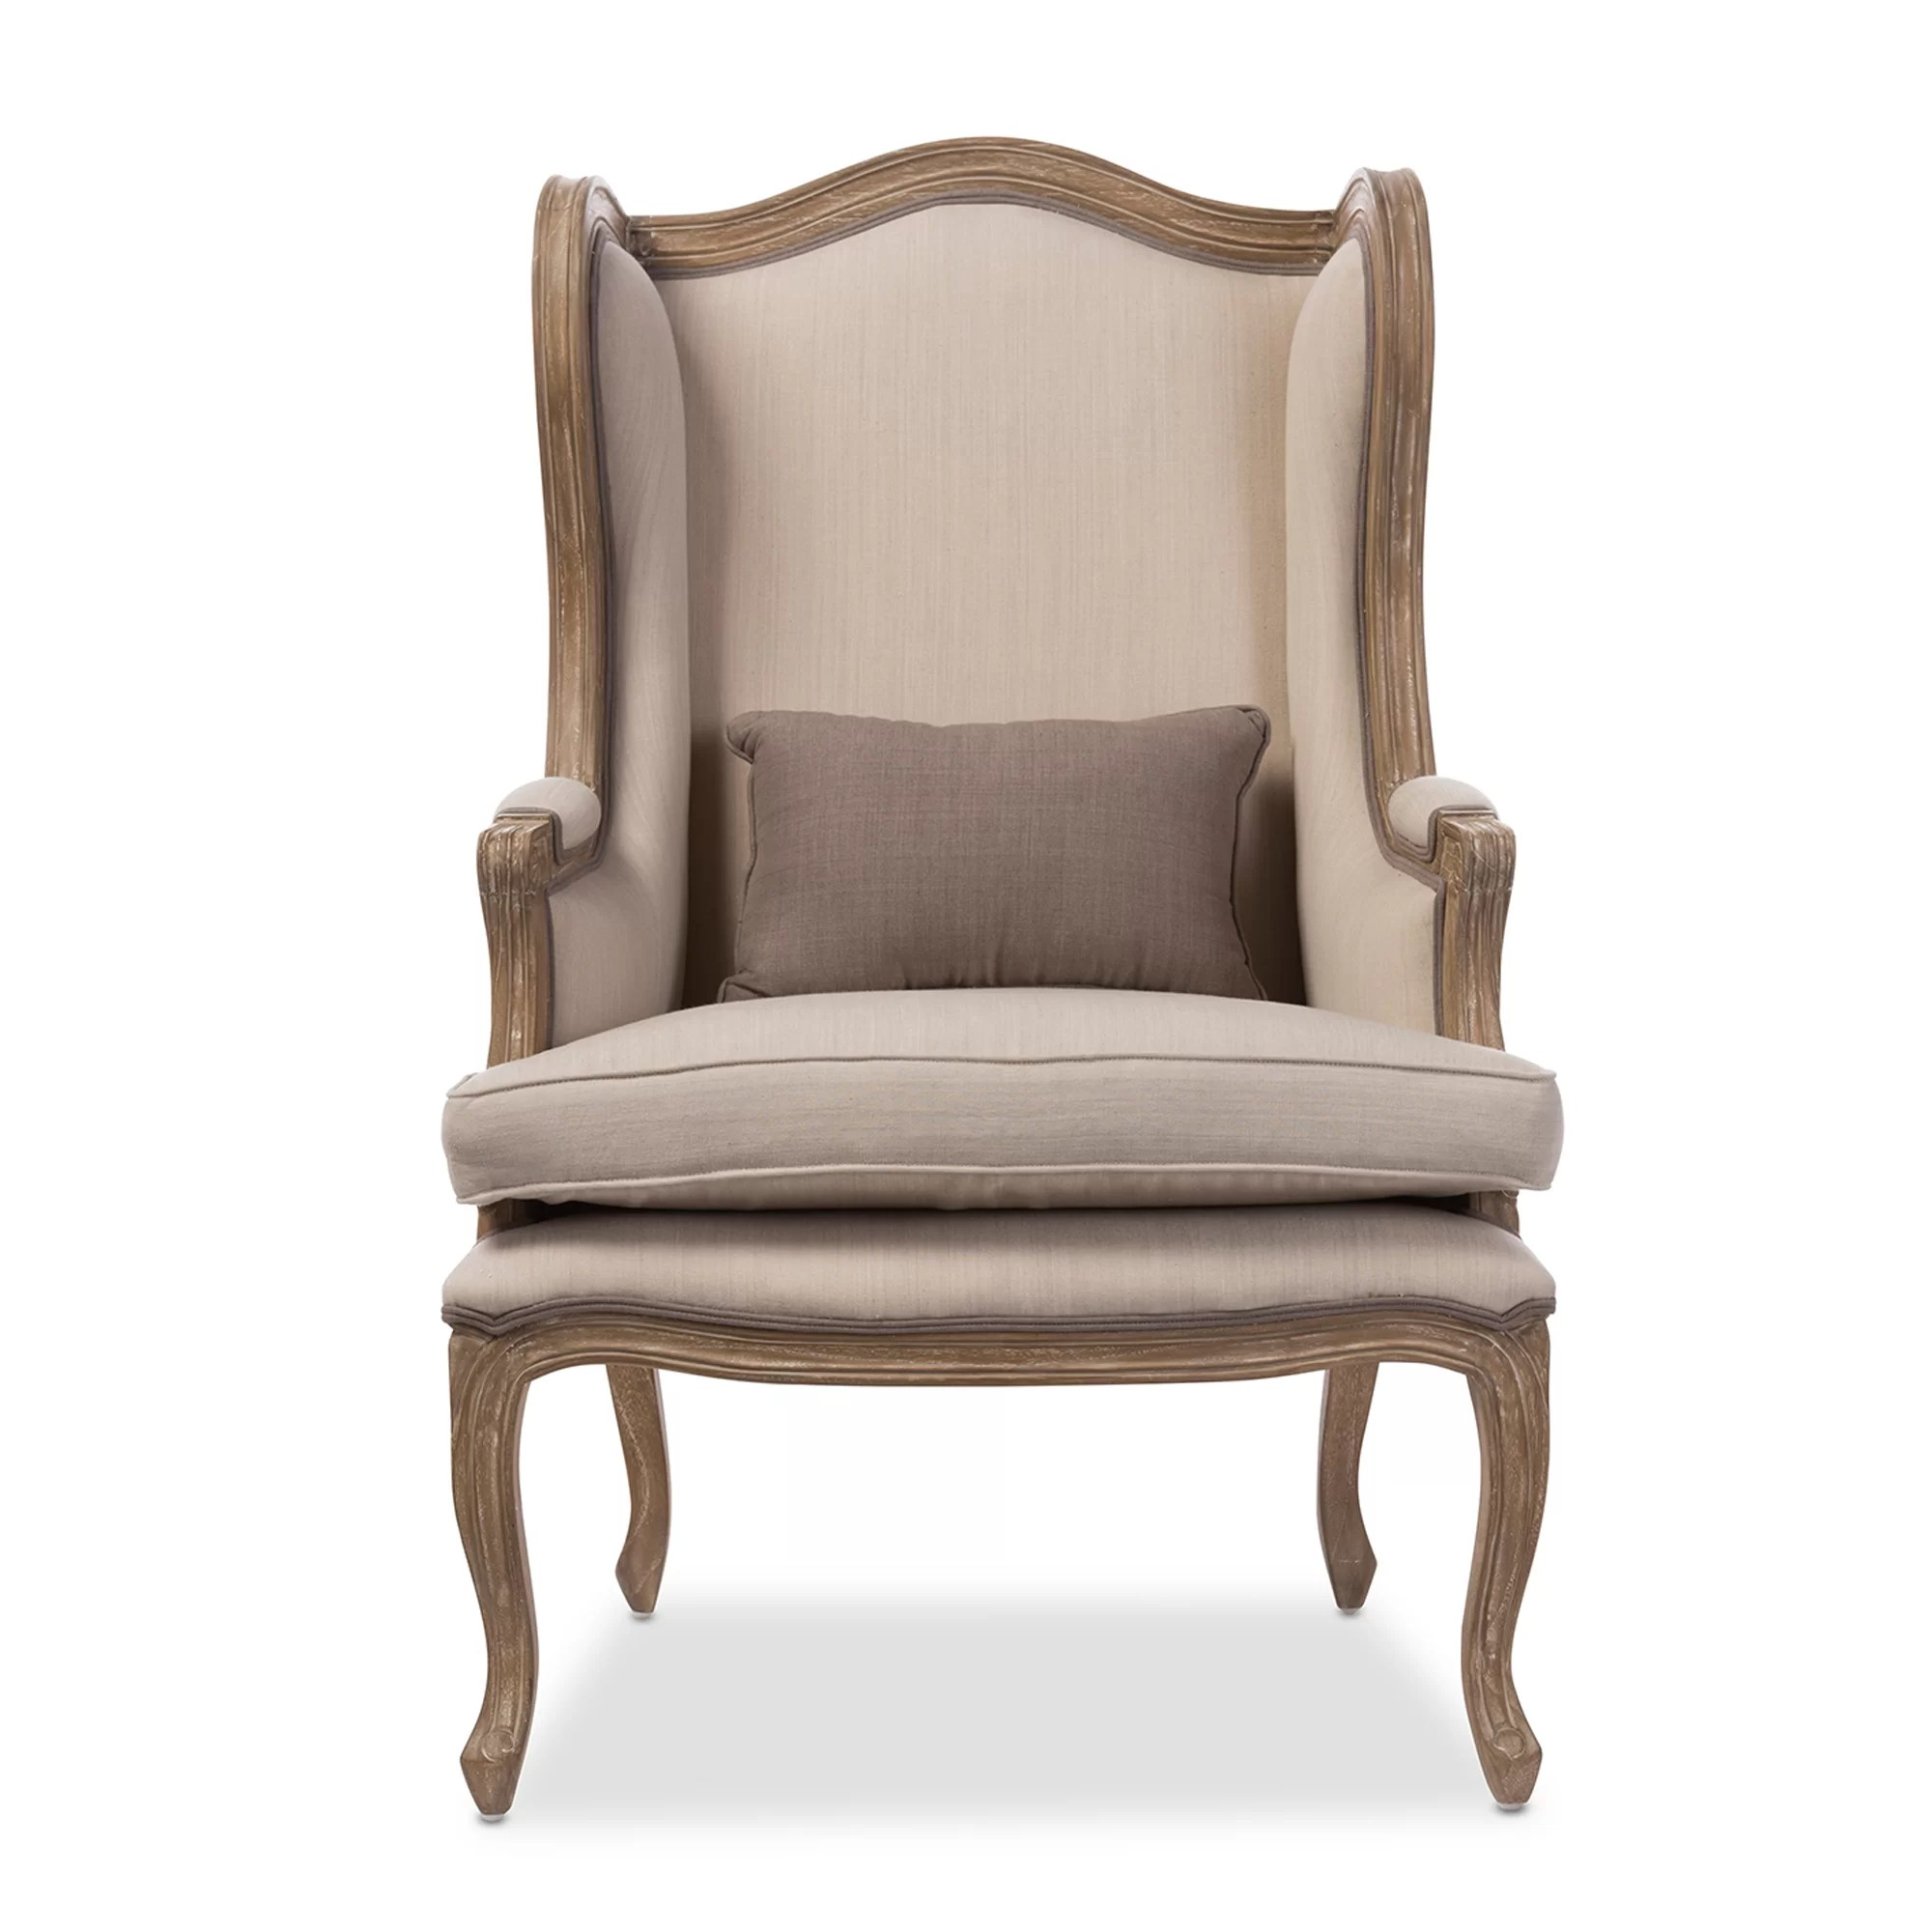 Baxton Chair Wholesale Interiors Baxton Studio Oreille French